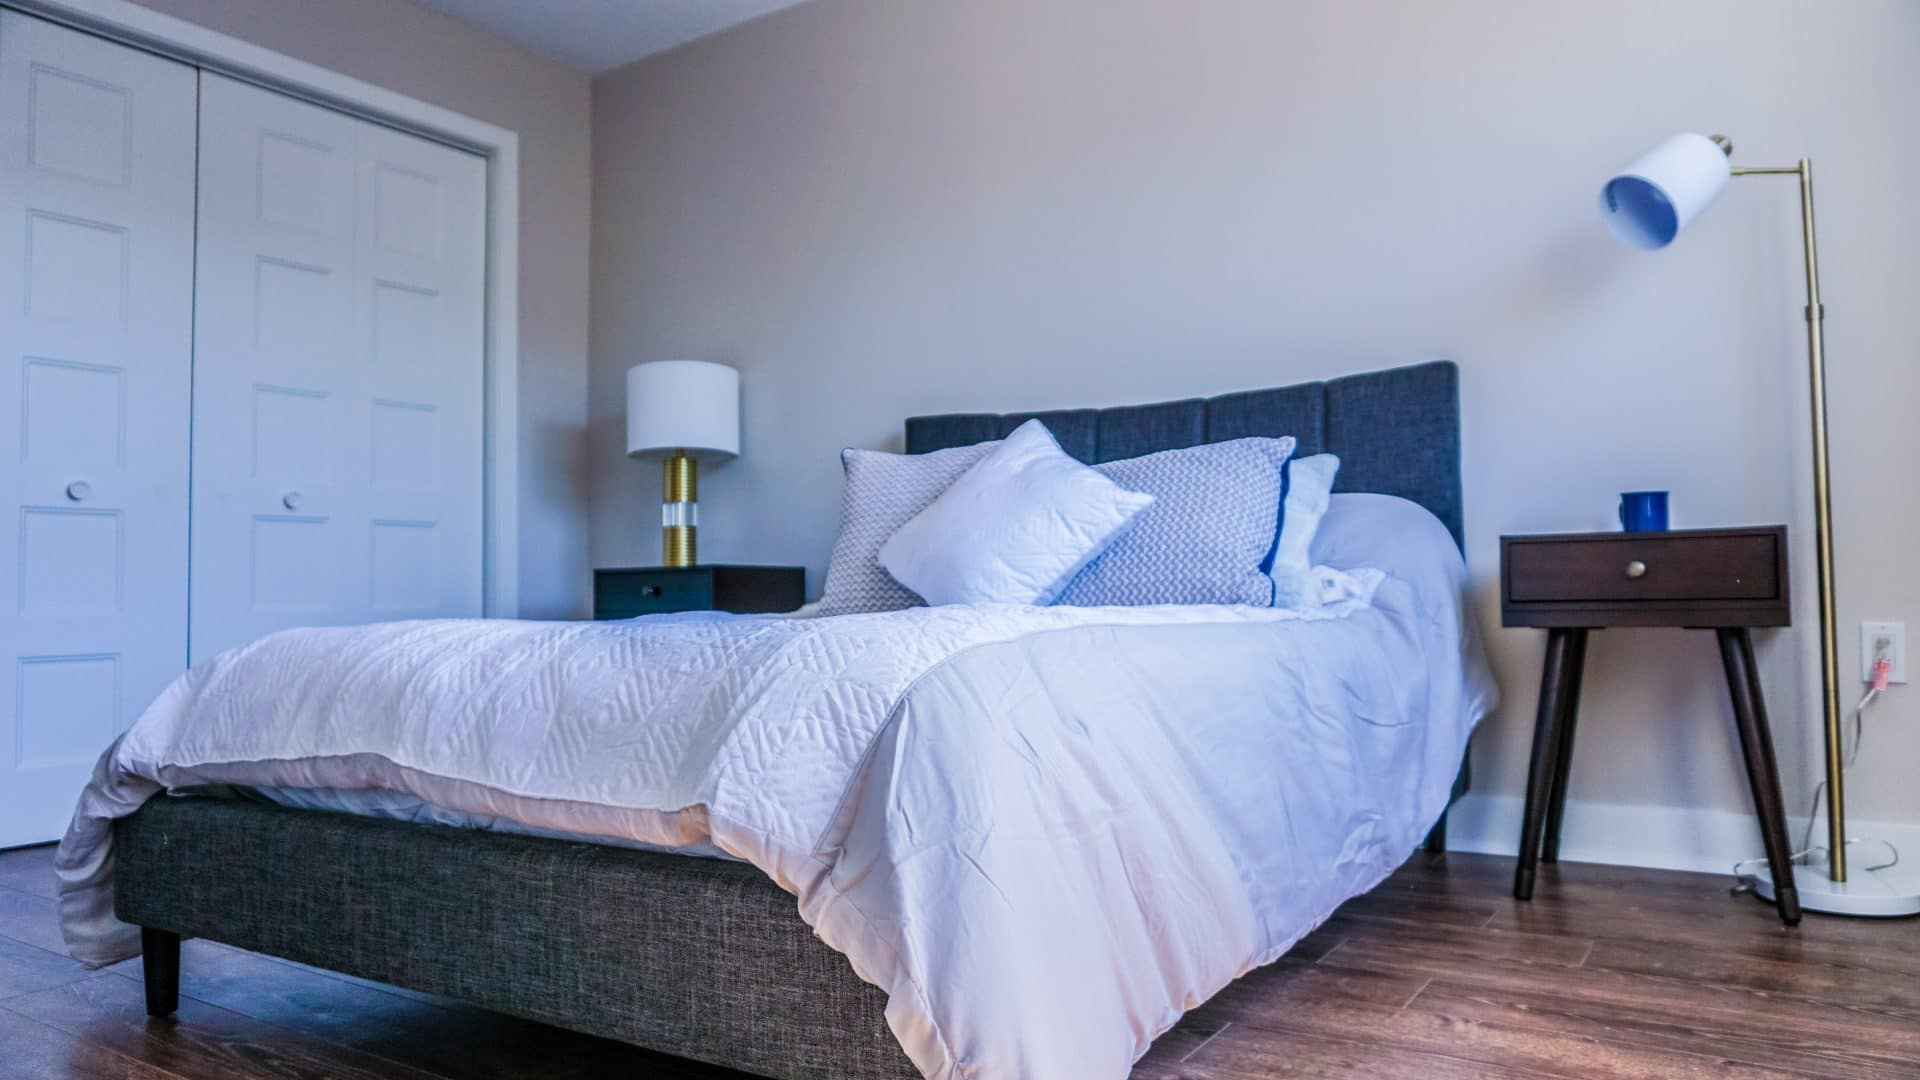 Residence Vanier - Appartement pour personnes agees - 005